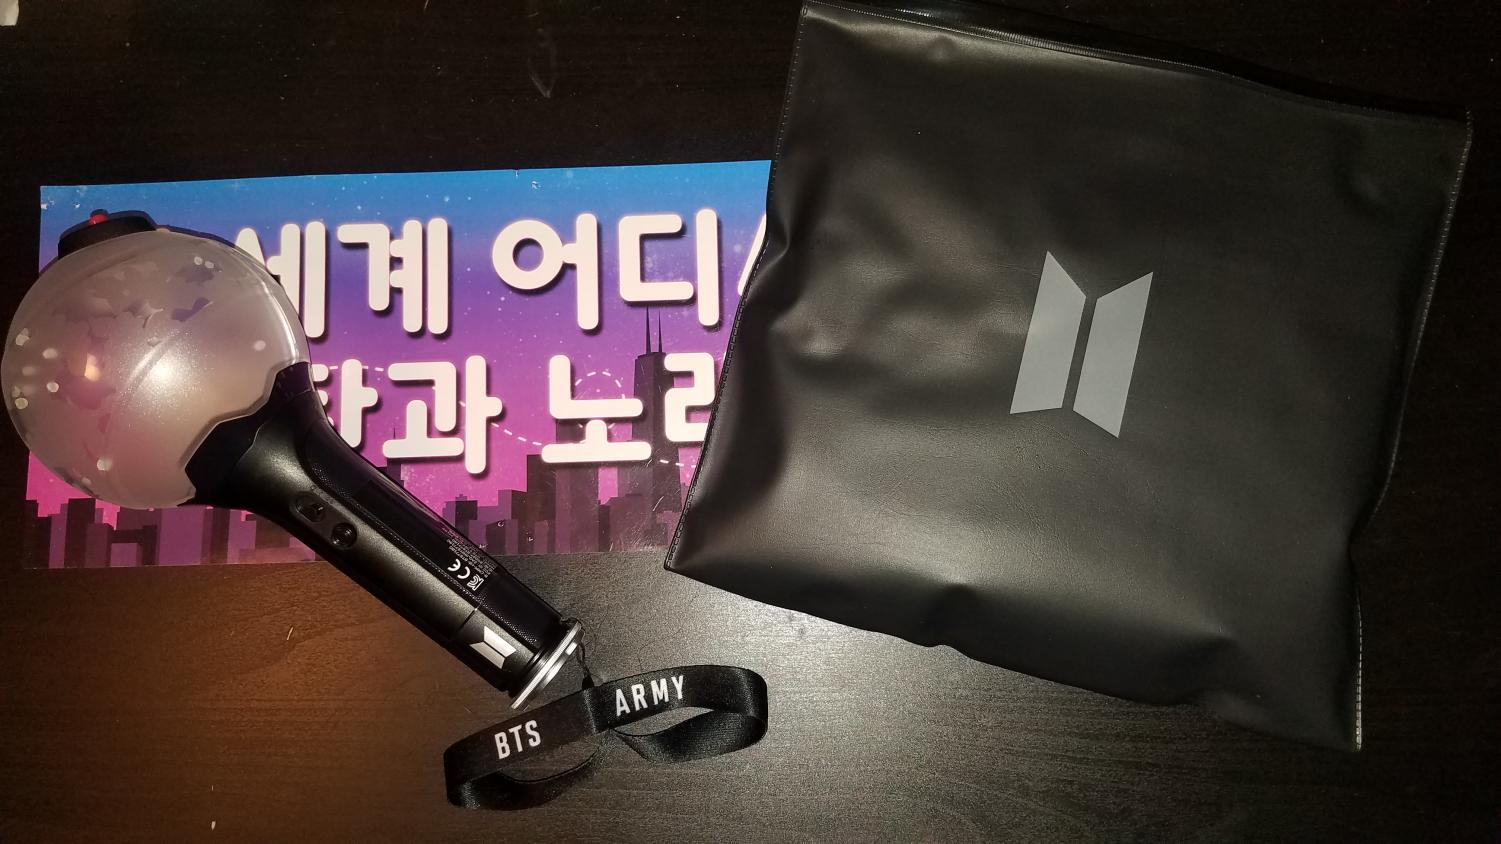 BTS merch and concert poster from their concert in Chicago, Illinois.